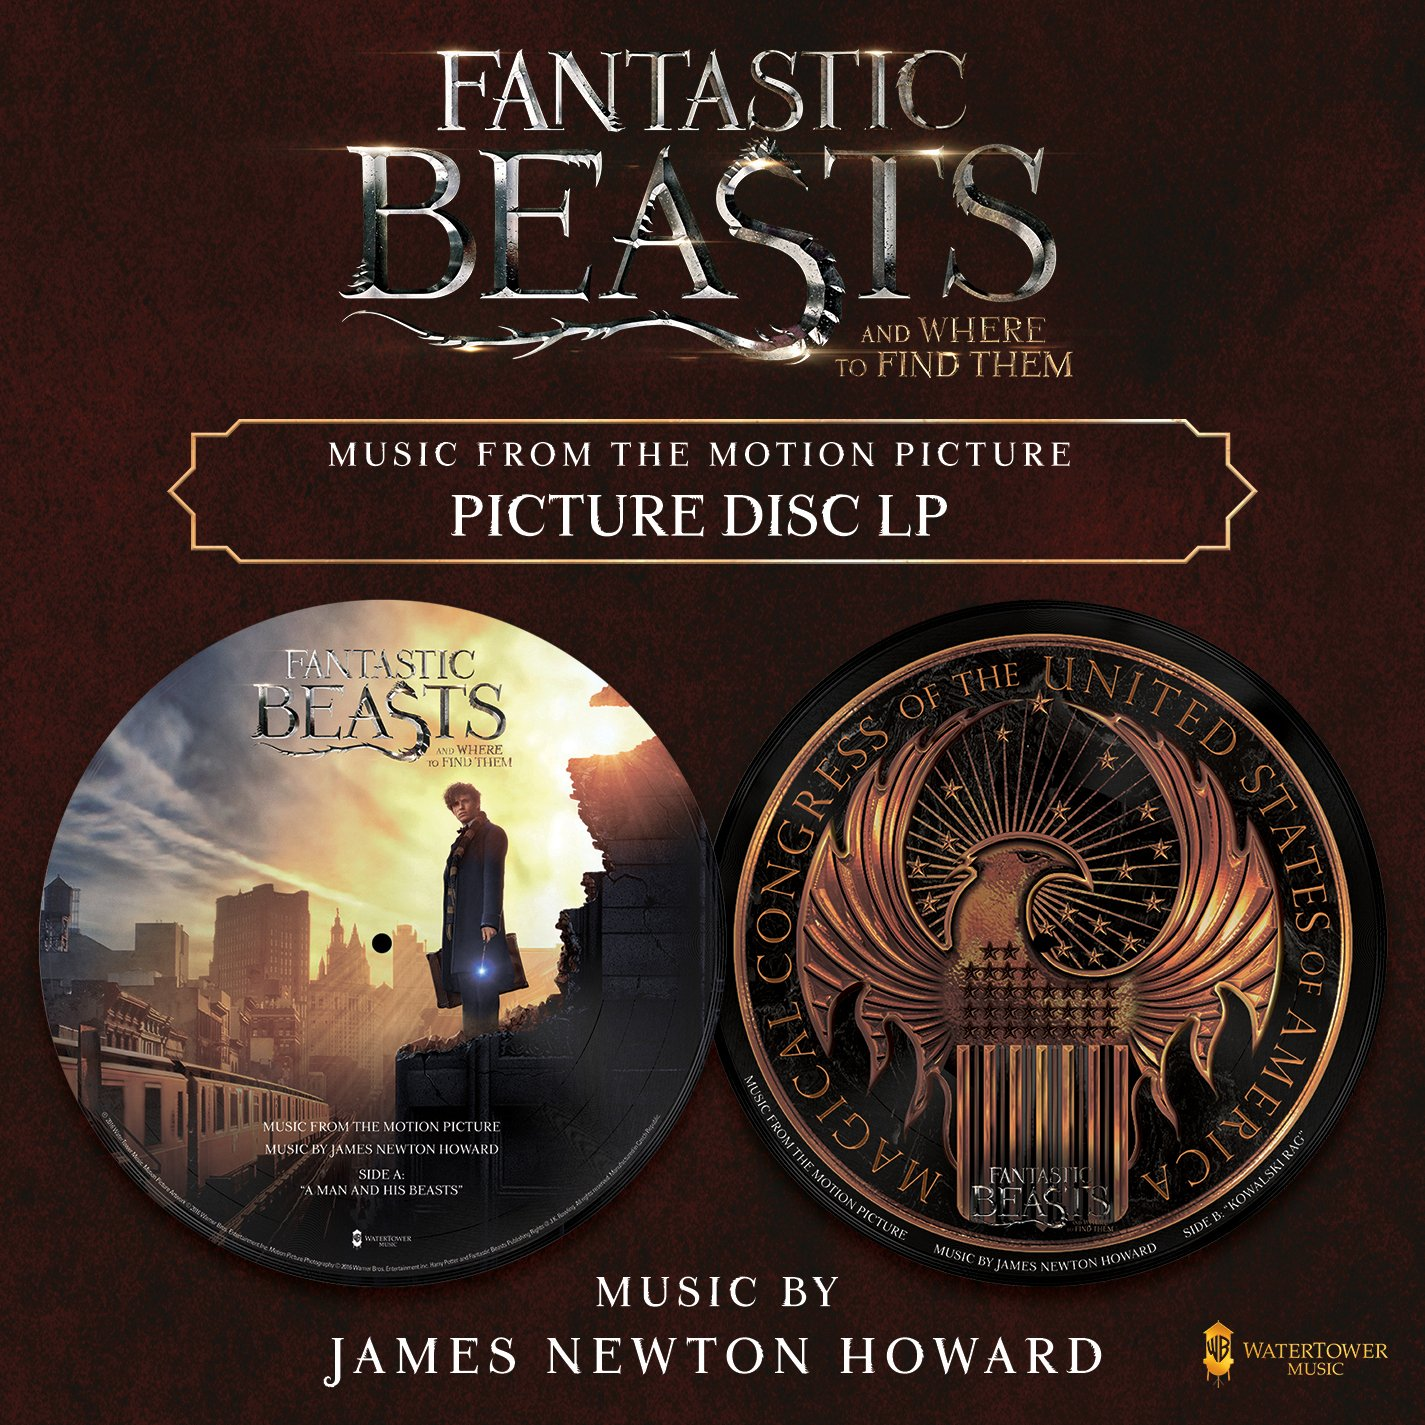 """James Newton Howard - Fantastic Beasts And Where To Find Them: Music From The Motion Picture [12"""" Picture Disc] - Amazon.com Music"""